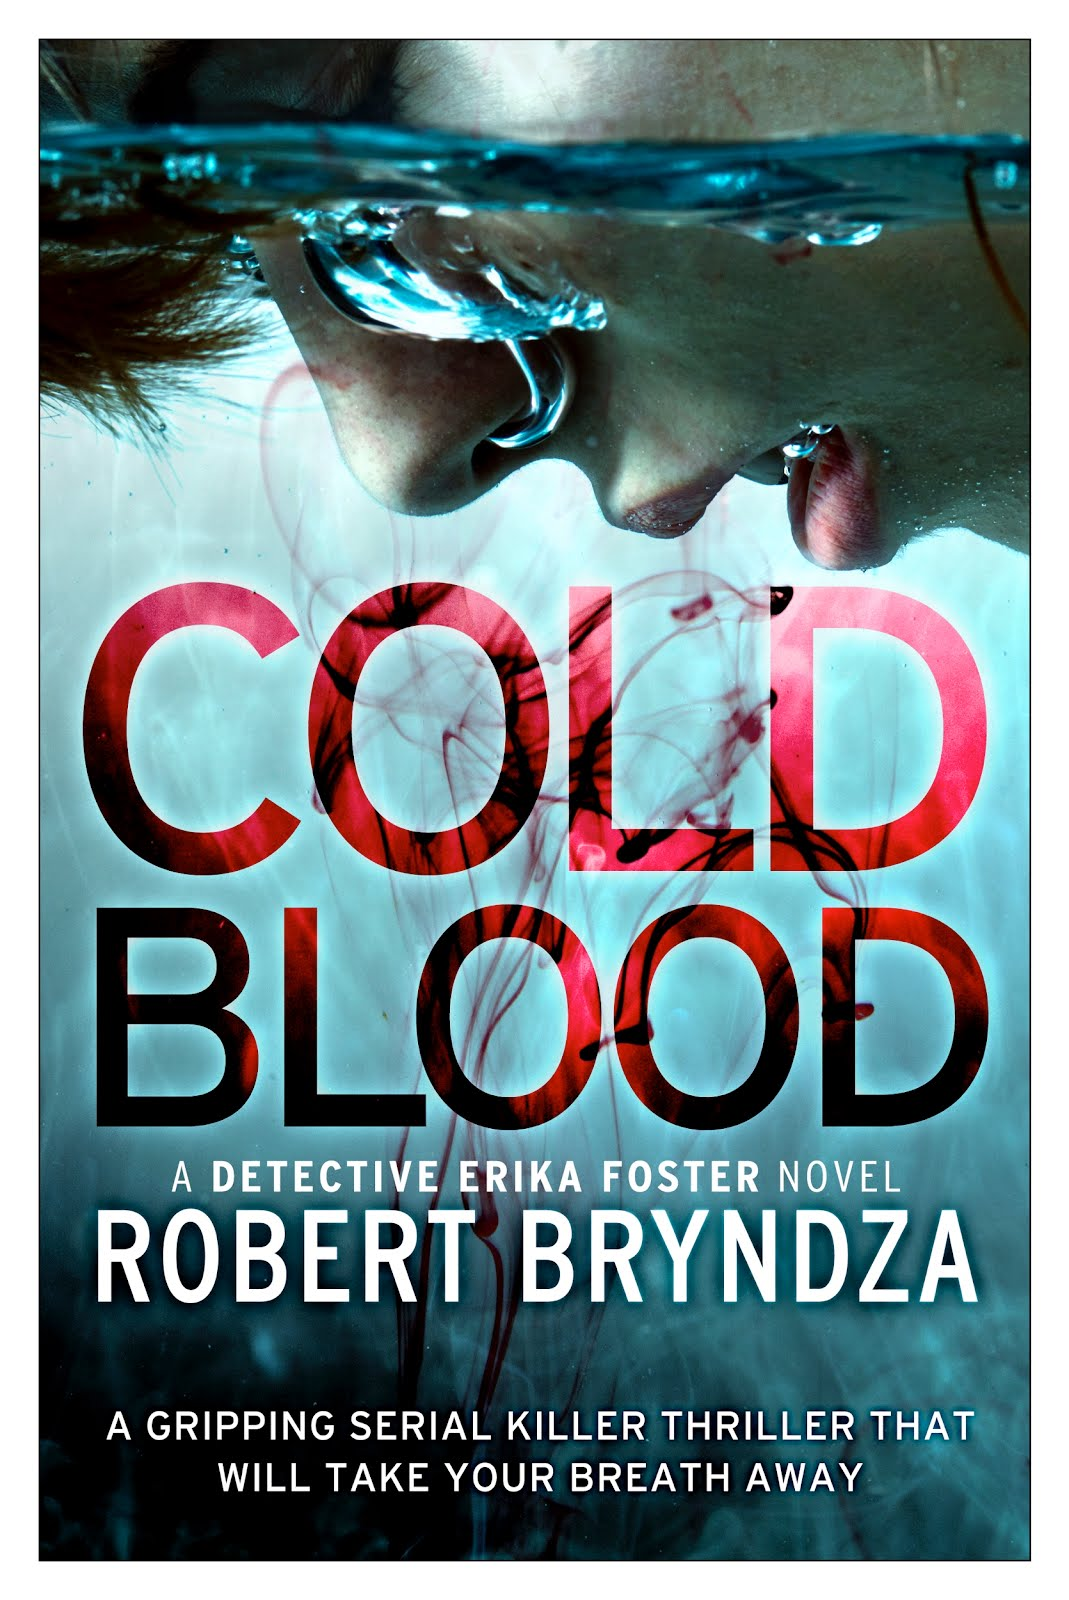 in cold blood book review Download cold blood ebook for free in format pdf,epub  the book review café 'i absolutely love robert bryndza's writing and the erika foster series is.